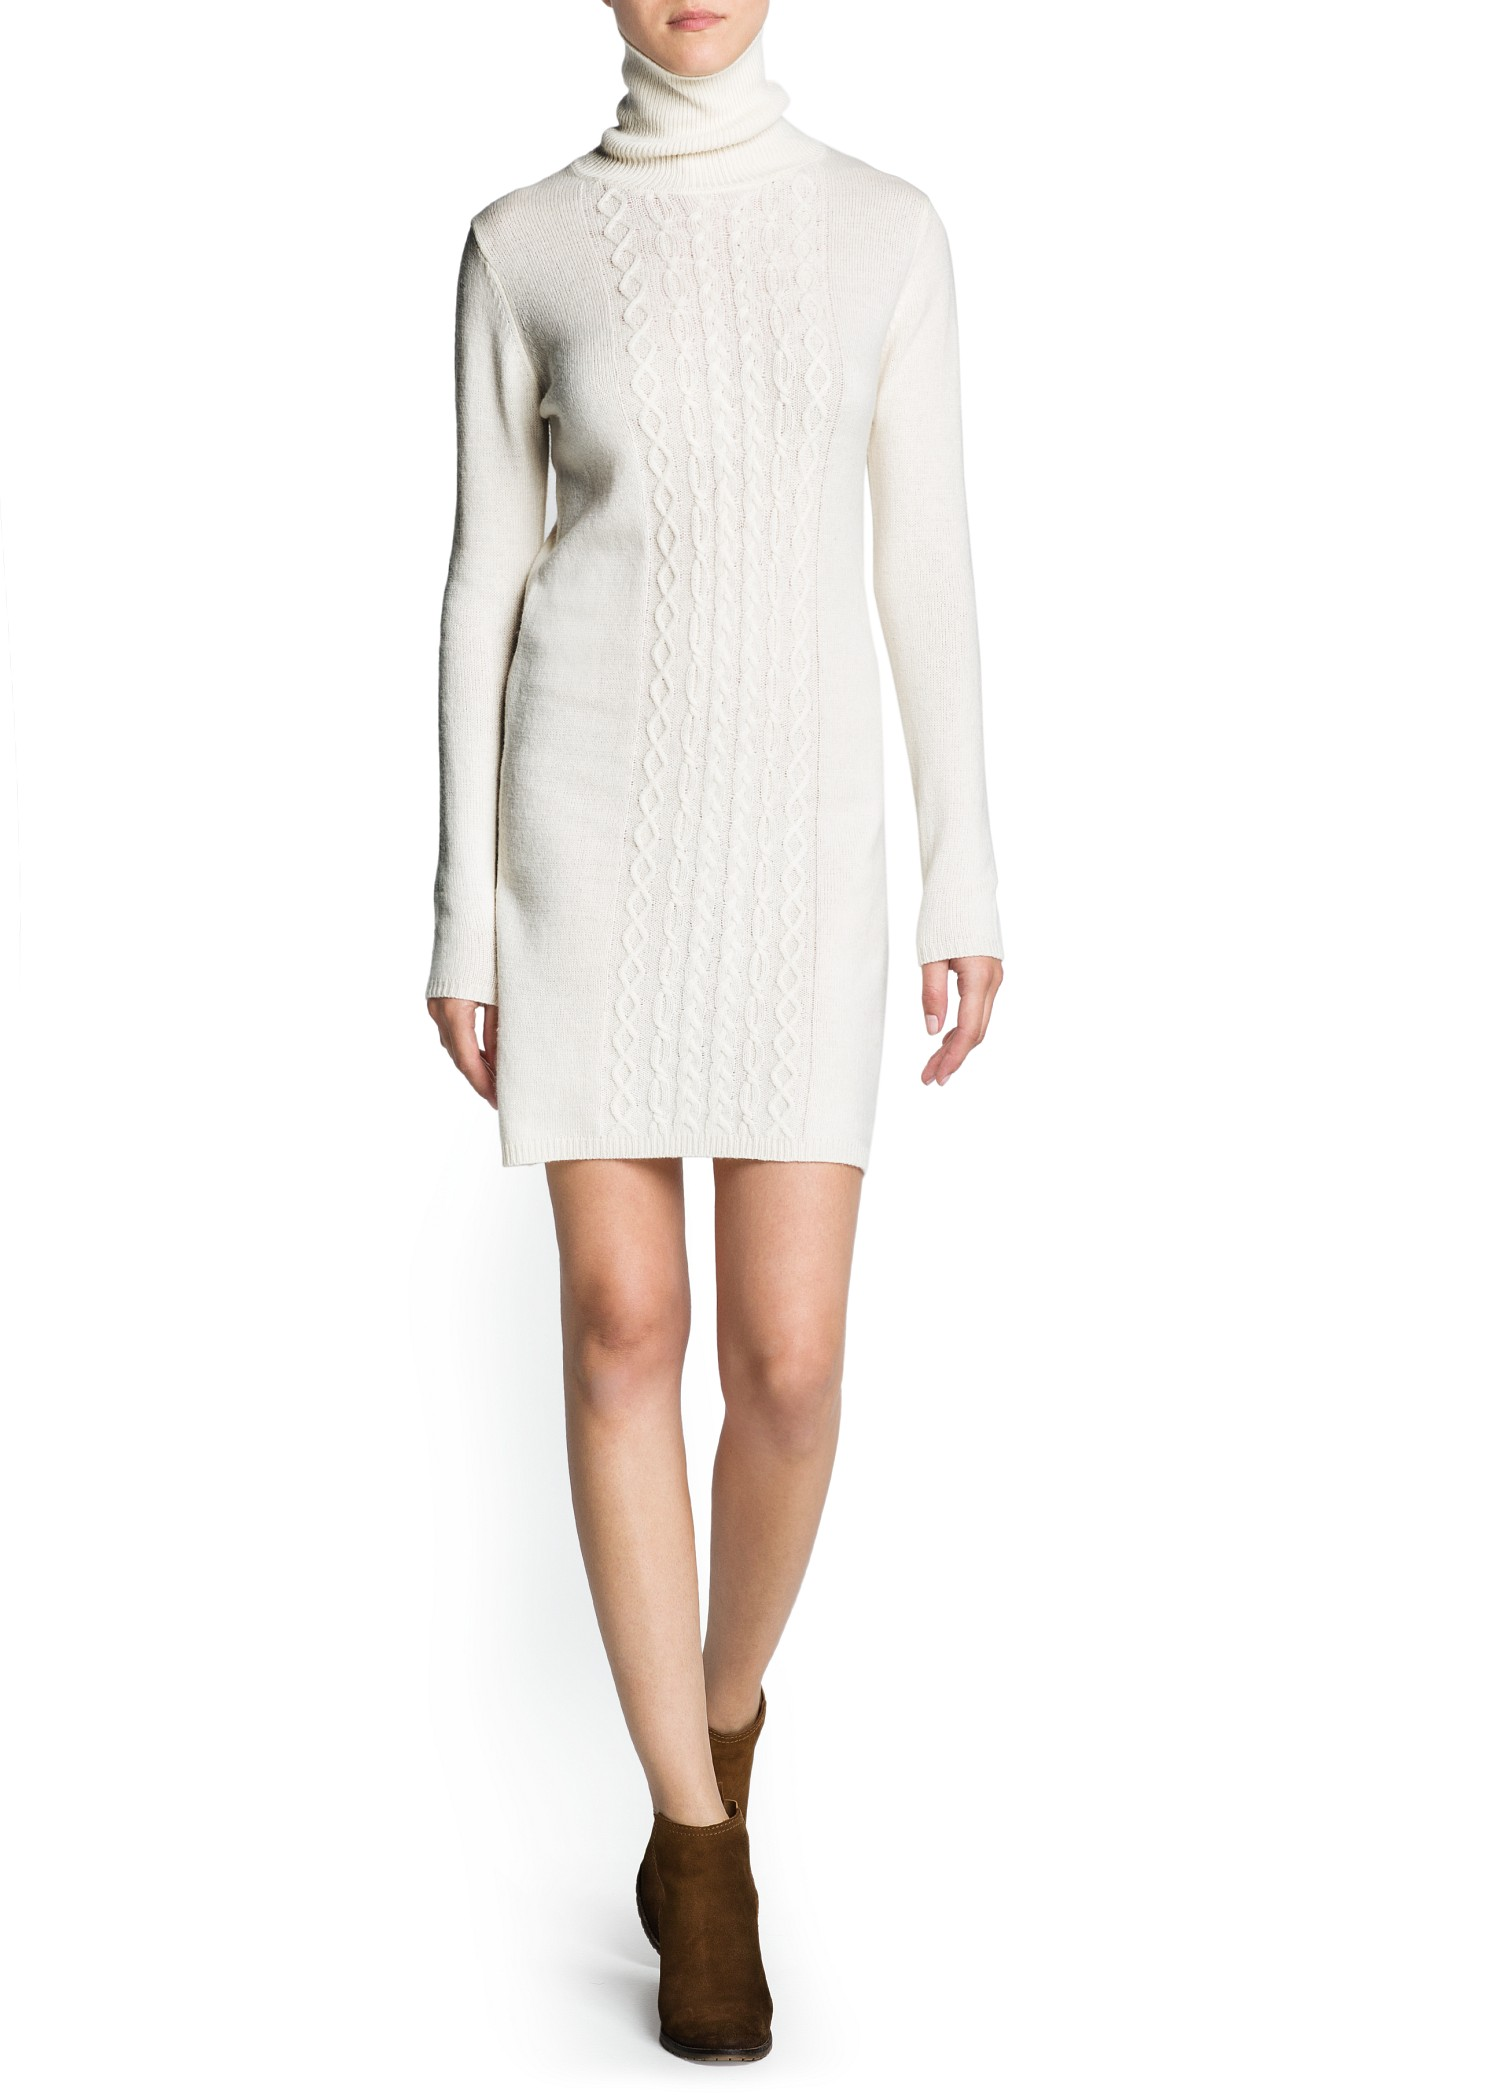 Knitting Pattern Turtleneck Dress : Mango Cable Knit Turtleneck Dress in White (Neutral) Lyst